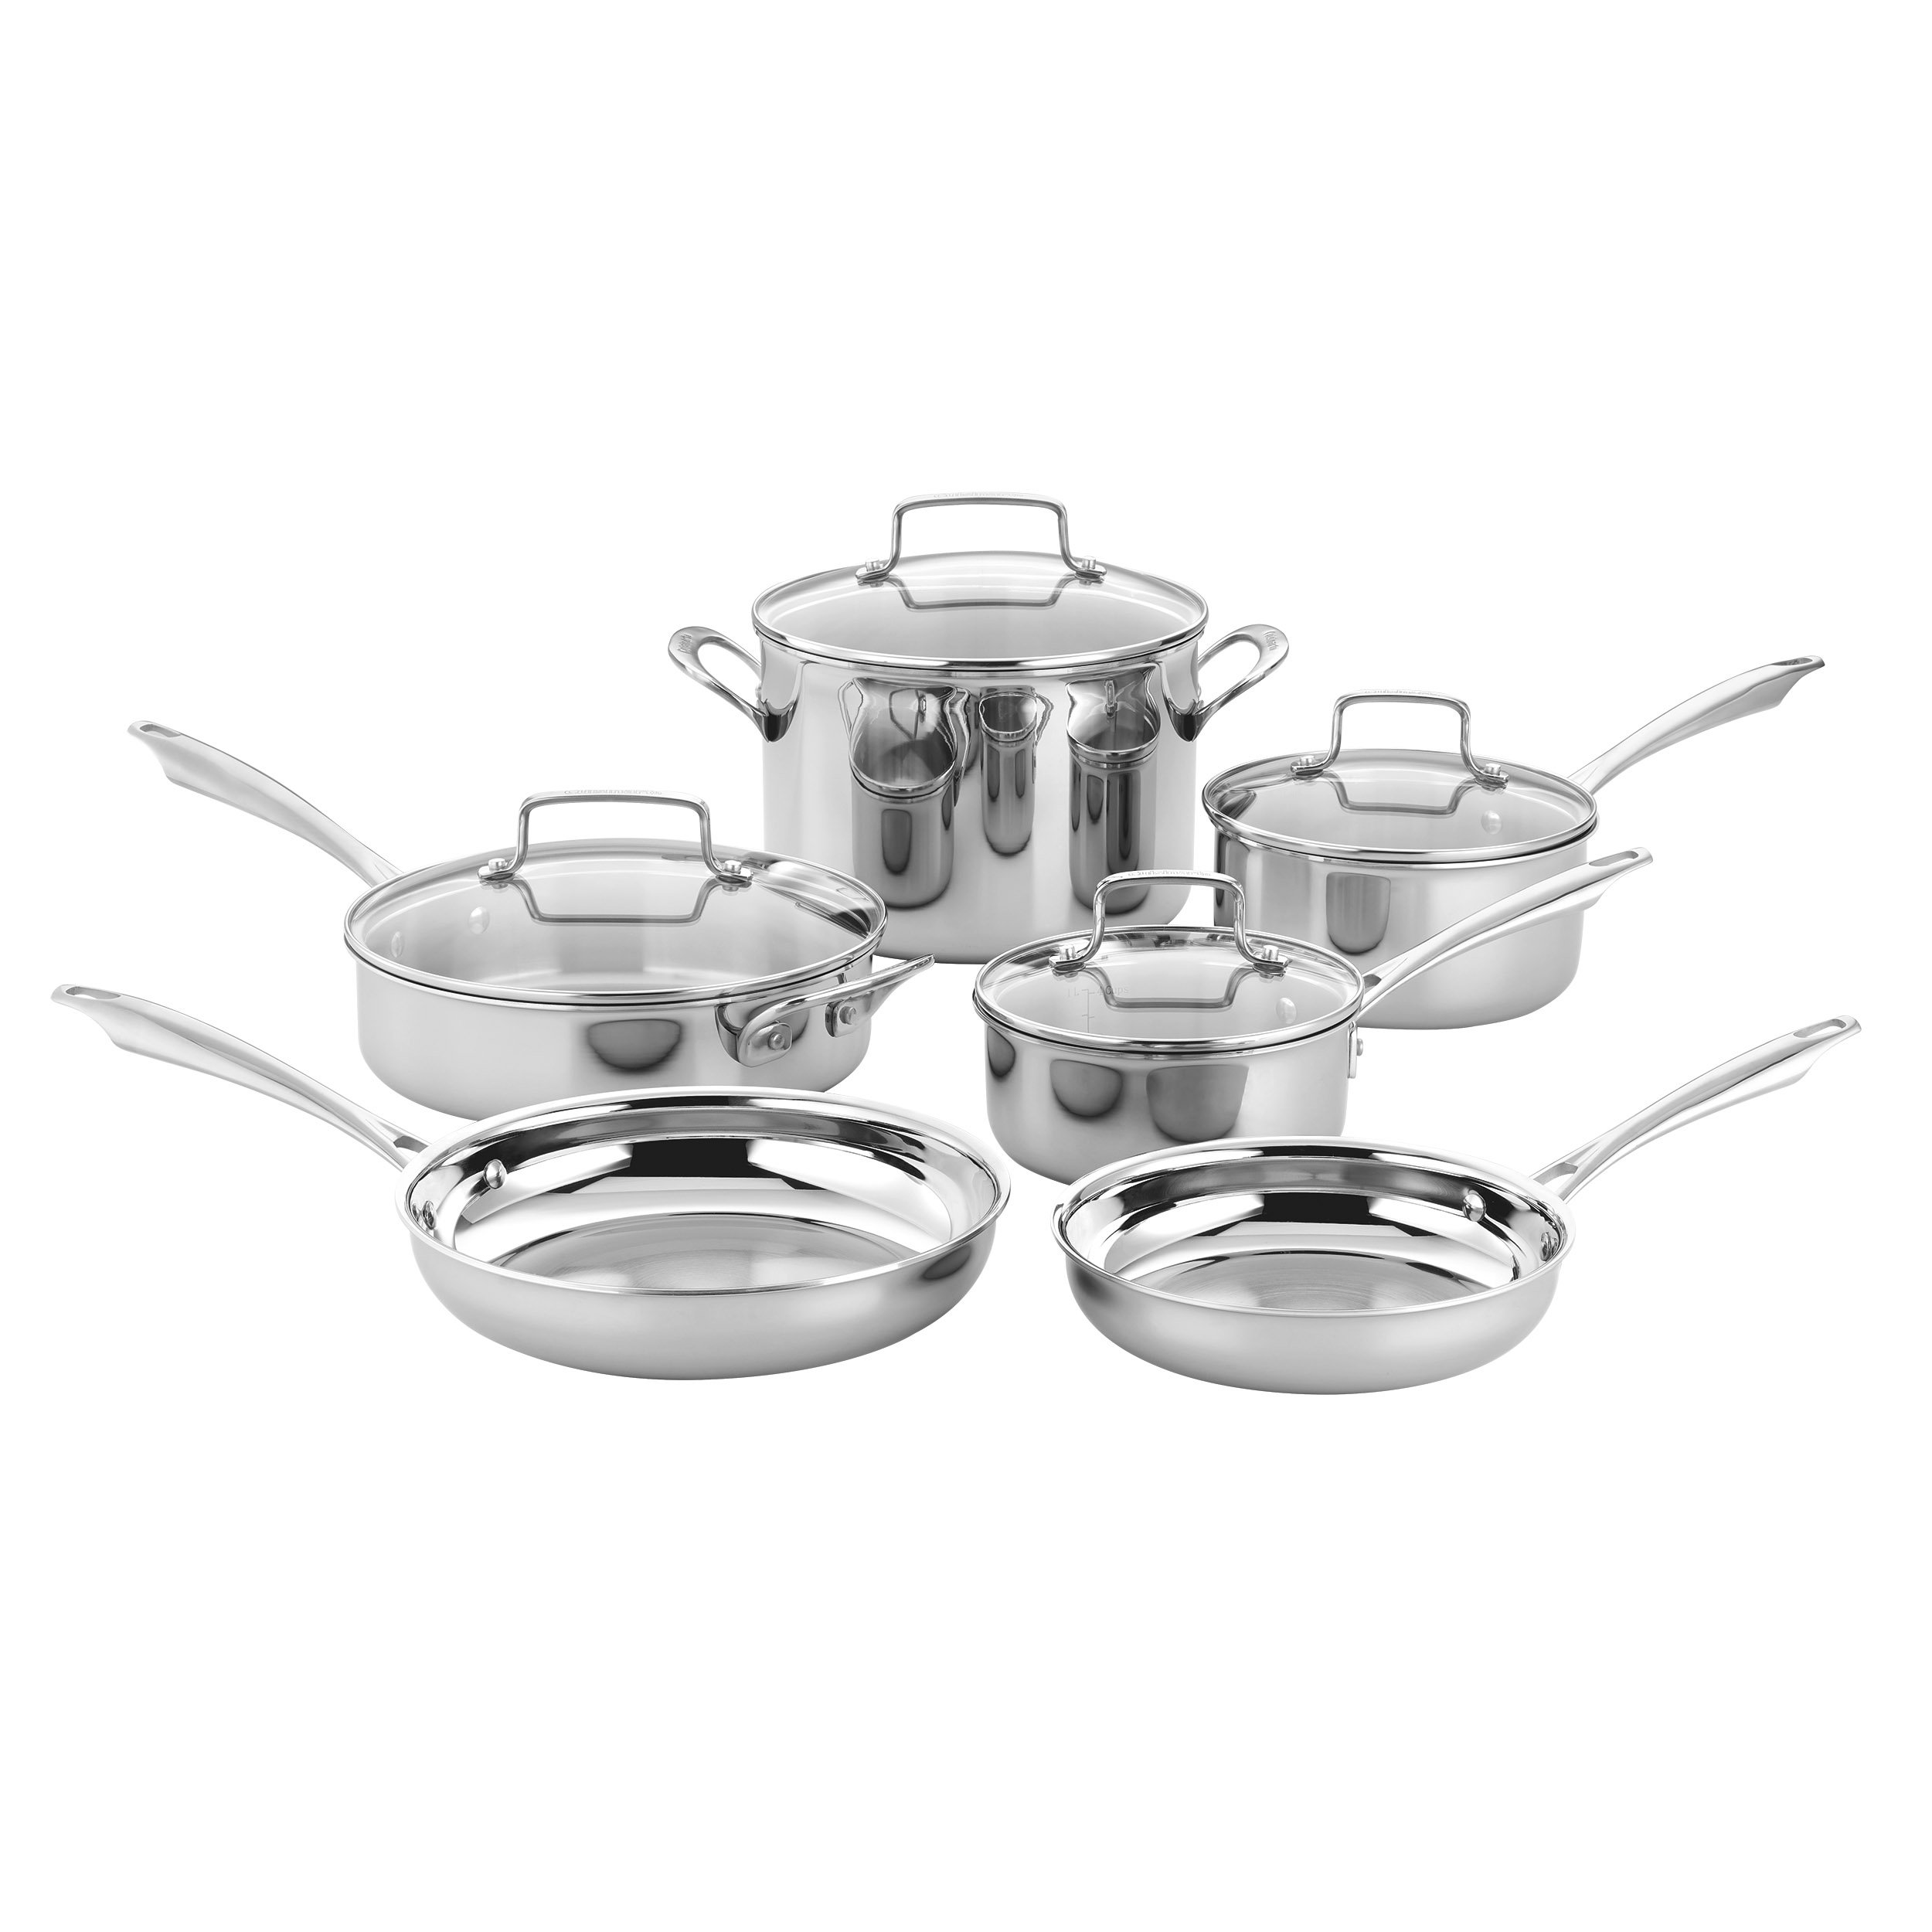 Cuisinart TPS-10 10 Piece Tri-ply Stainless Steel Cookware Set, PC, Silver by Cuisinart (Image #1)